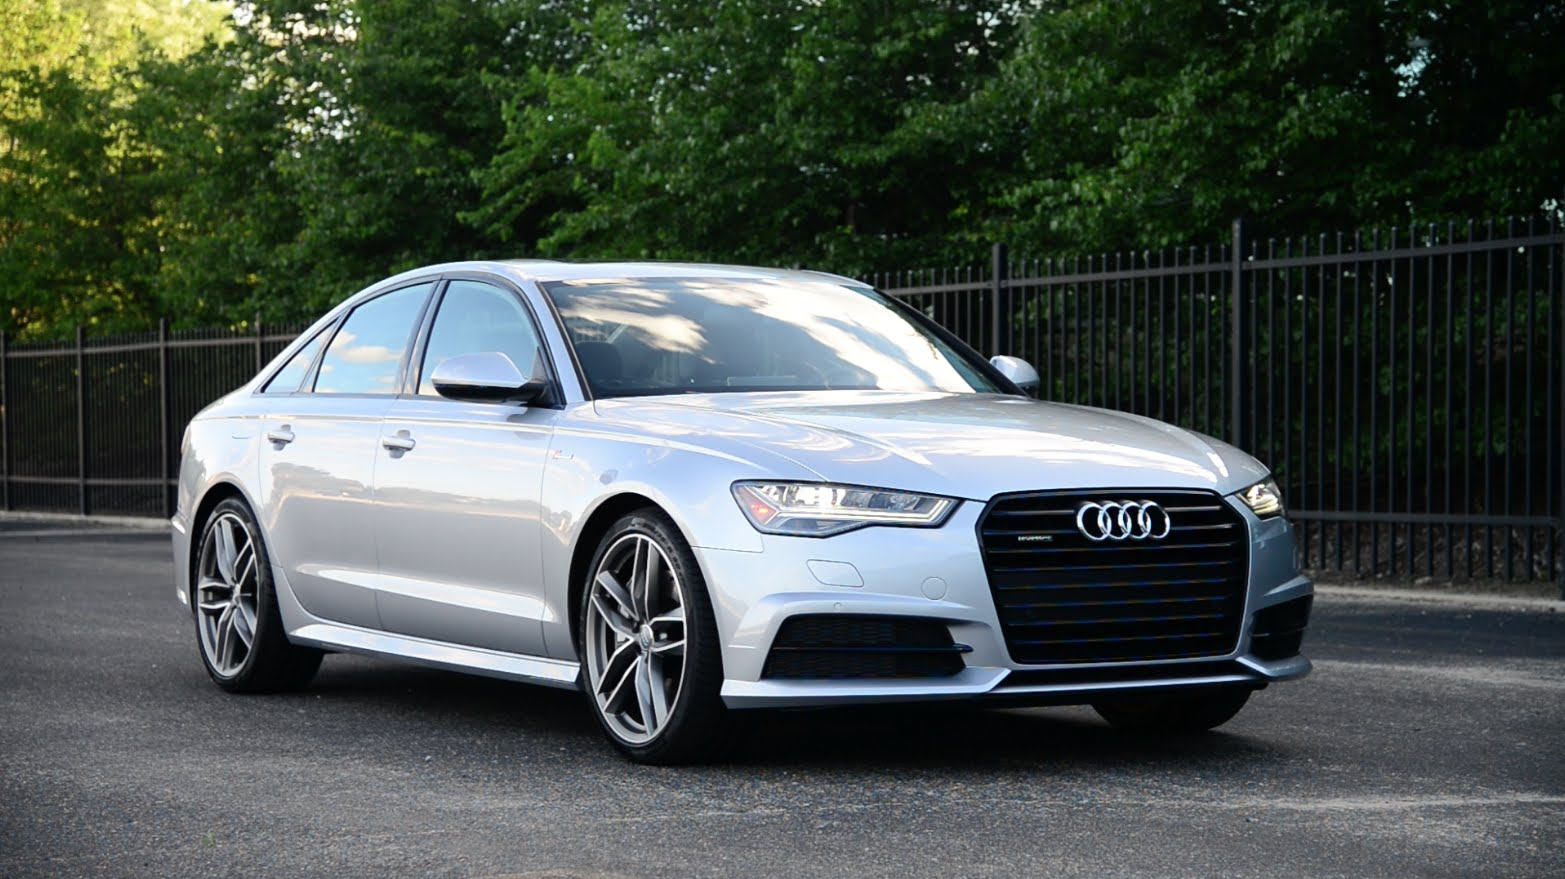 2016 audi a6 2 0t quattro sedan review by steve purdy. Black Bedroom Furniture Sets. Home Design Ideas